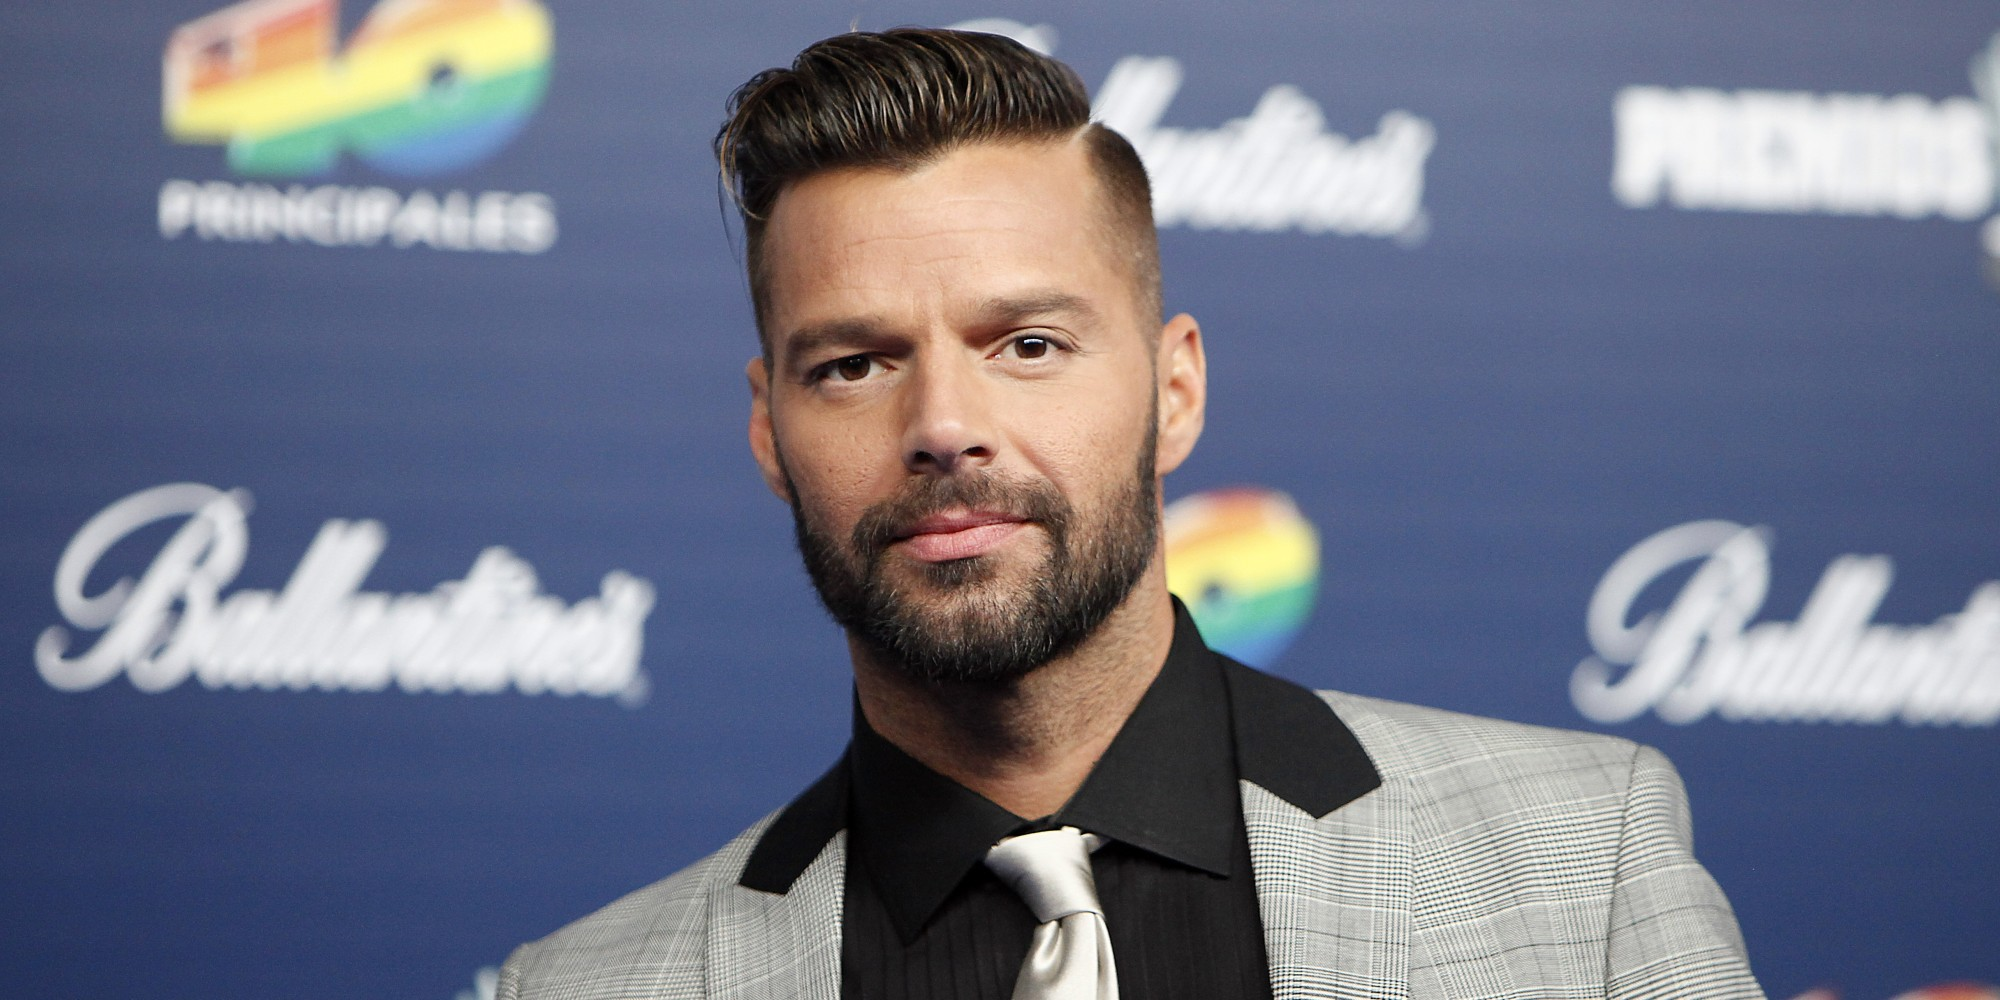 ricky martin she bangsricky martin - la mordidita, ricky martin - vente pa' ca, ricky martin - livin' la vida loca, ricky martin - la mordidita скачать, ricky martin 2016, ricky martin mp3, ricky martin - la mordidita перевод, ricky martin maria, ricky martin adios, ricky martin she bangs, ricky martin instagram, ricky martin слушать, ricky martin - la mordidita, ricky martin maluma скачать, ricky martin maria скачать, ricky martin adios перевод, ricky martin she bangs скачать, ricky martin wiki, ricky martin википедия, ricky martin la mordidita boxca